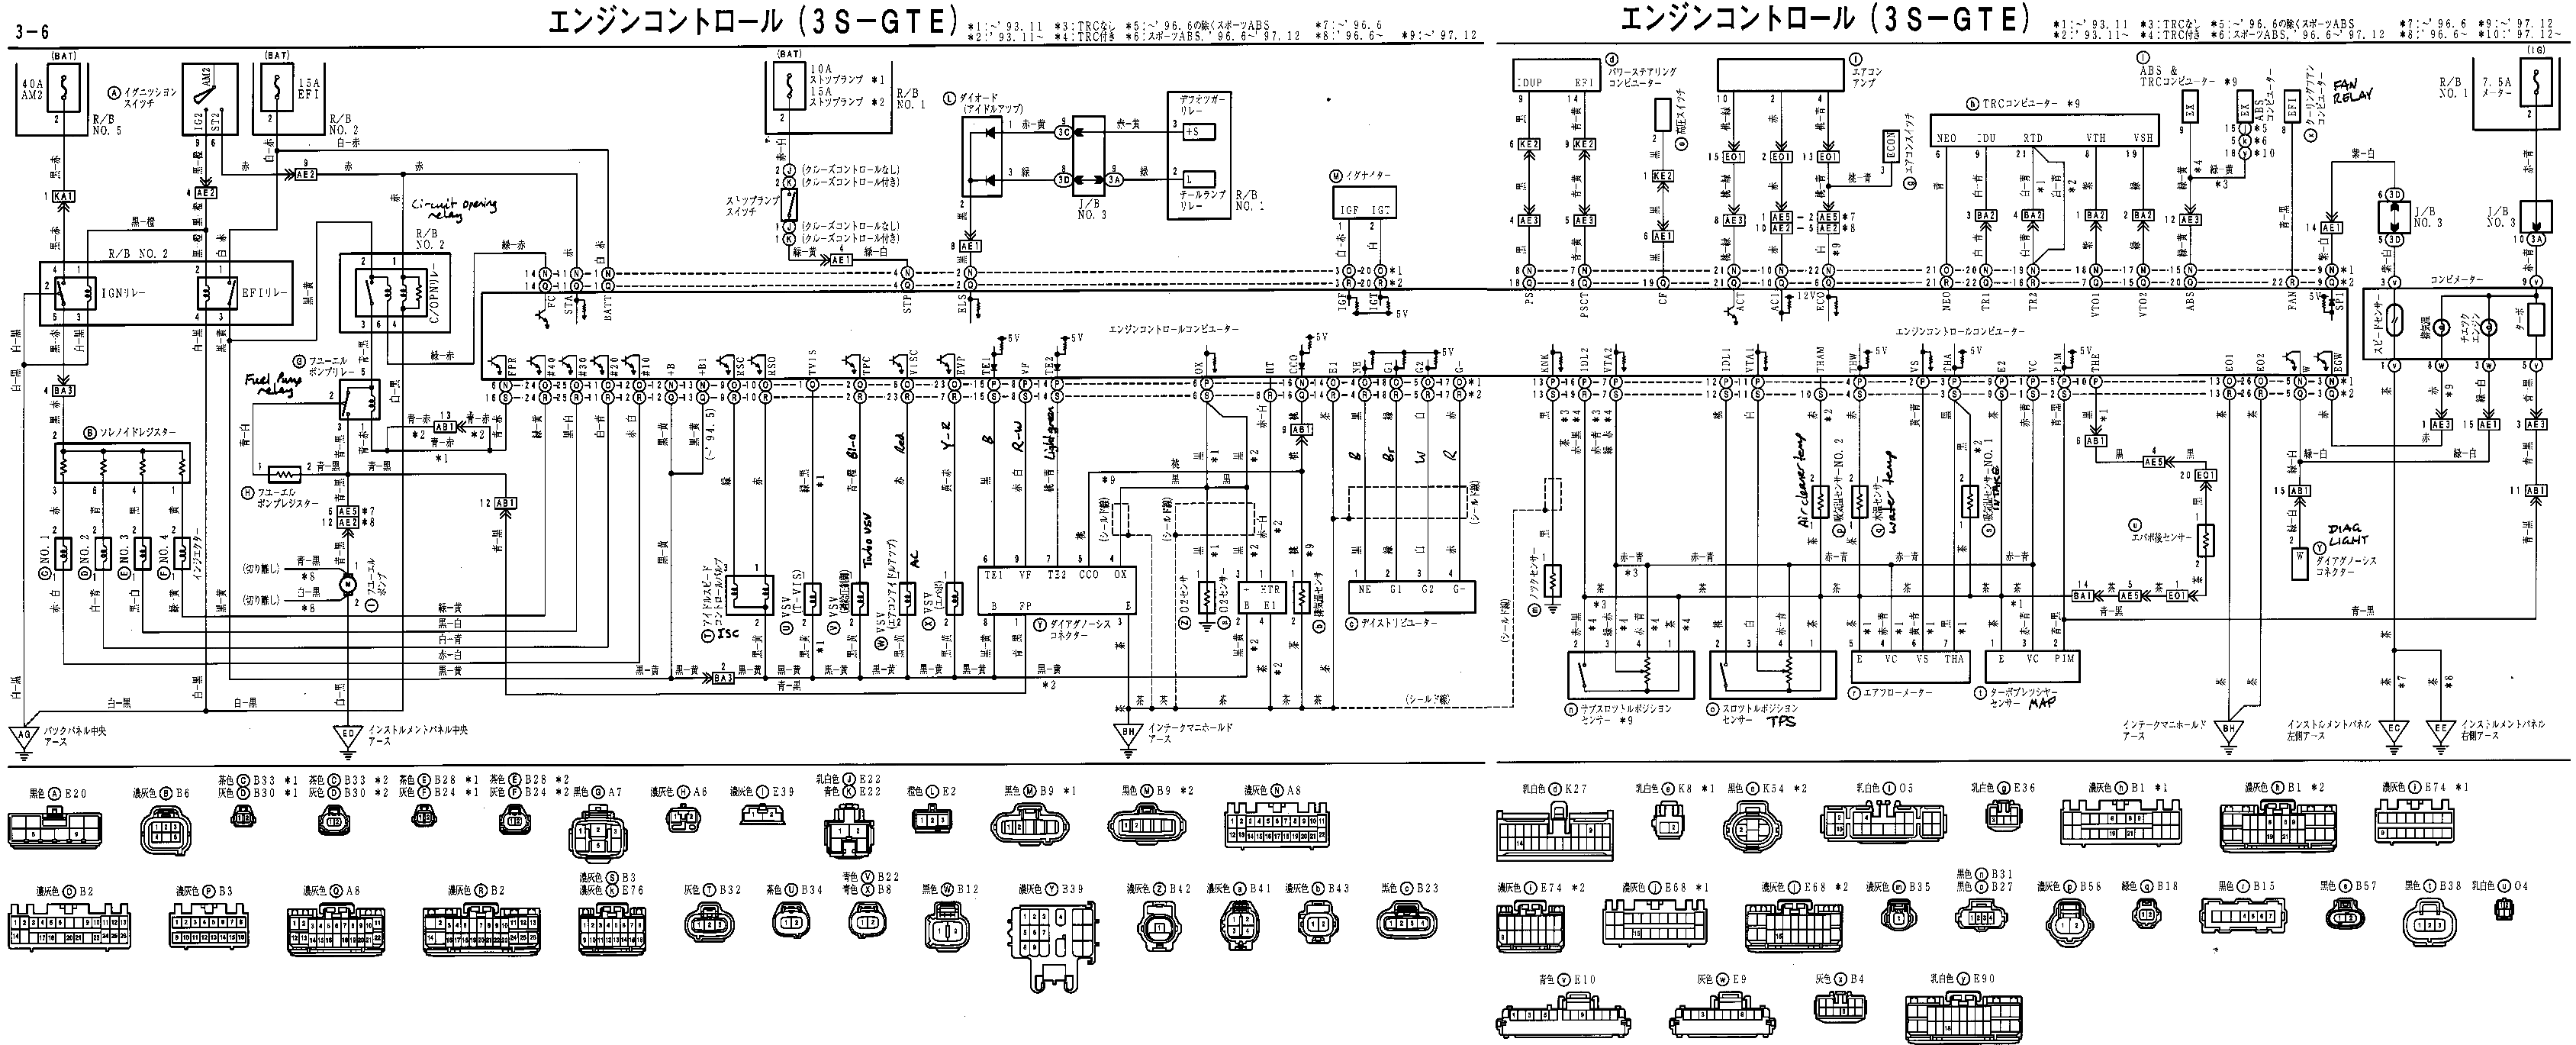 Unknown 3SGTE Diagram toyota celica wiring diagram 2001 toyota celica gts wiring diagram toyota celica wiring diagram at bayanpartner.co